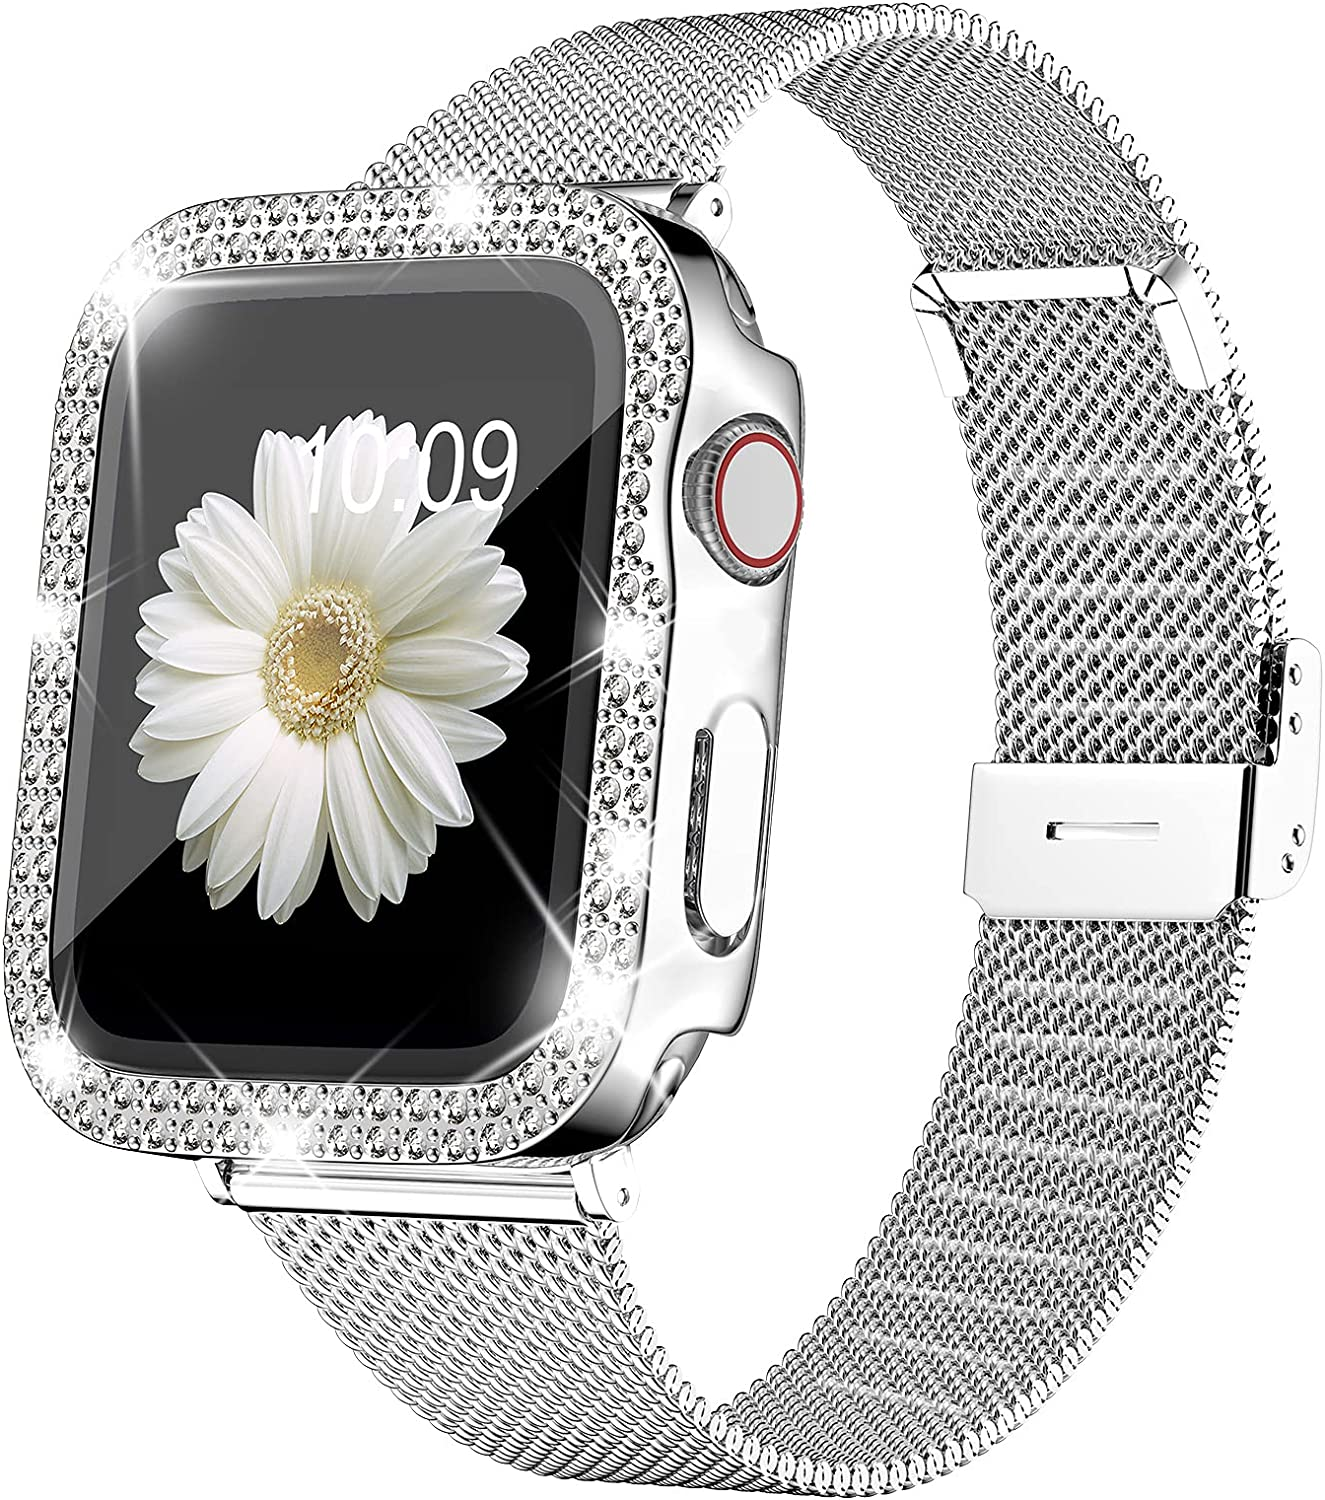 DABAOZA Compatible for Apple Watch Band 38mm 42mm and Case with Screen Protector , Women Stainless Steel Metal Slim Replacement Loop Mesh Strap for iWatch Band Series 3/2/1